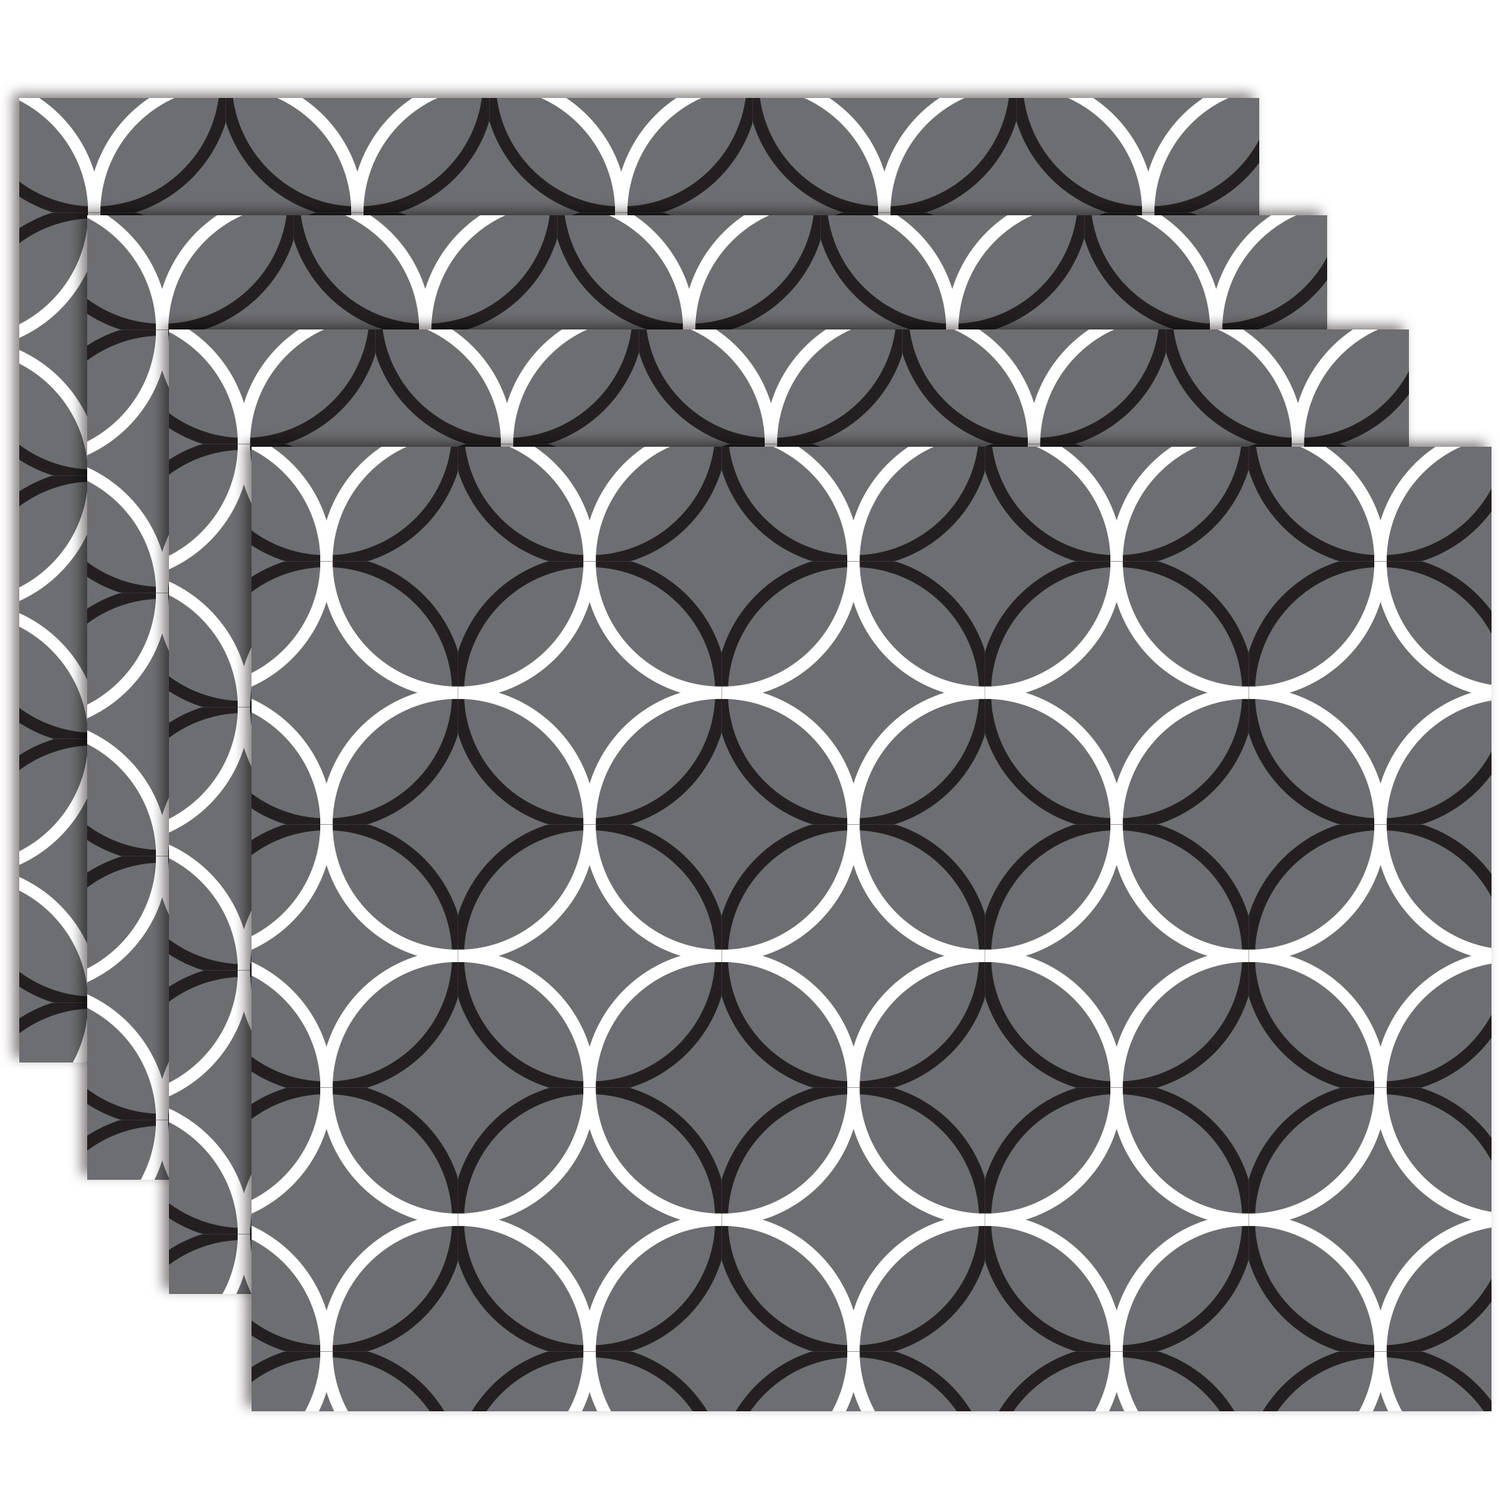 Hotel by Domay Circles Placemats, Set of 4, Multiple Colors Available by